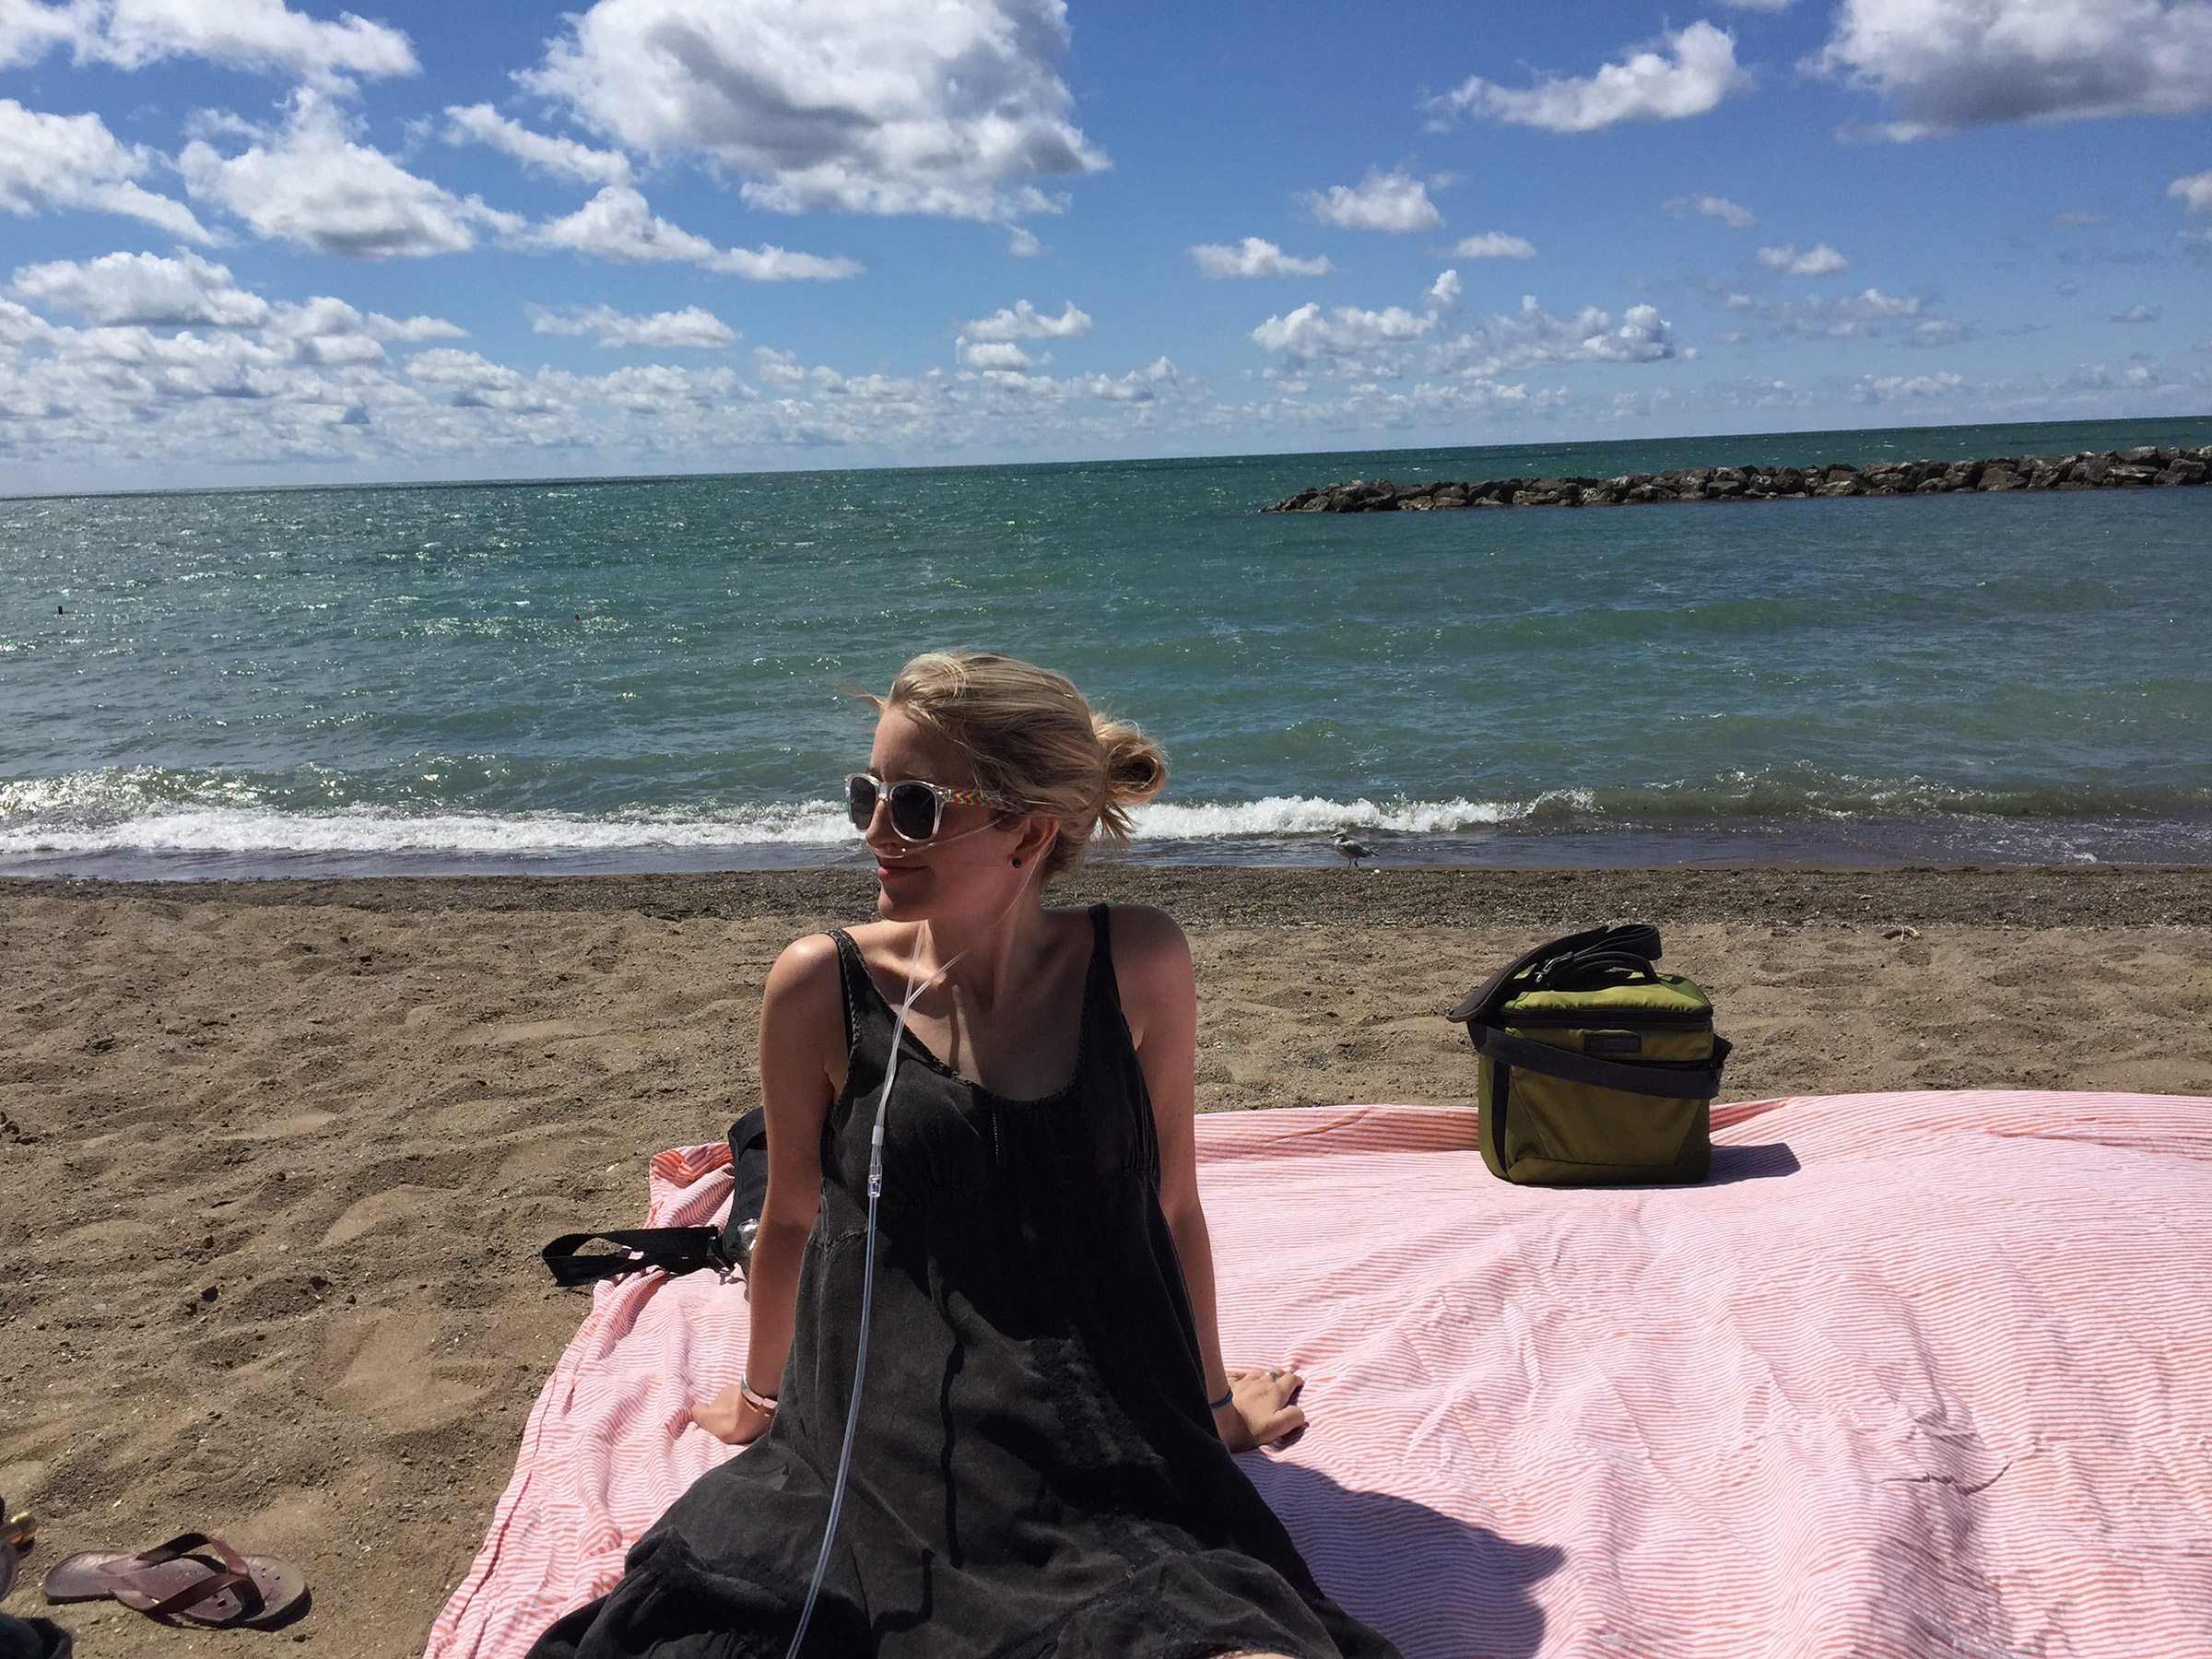 The author's daughter, Caitlin, on the beach.